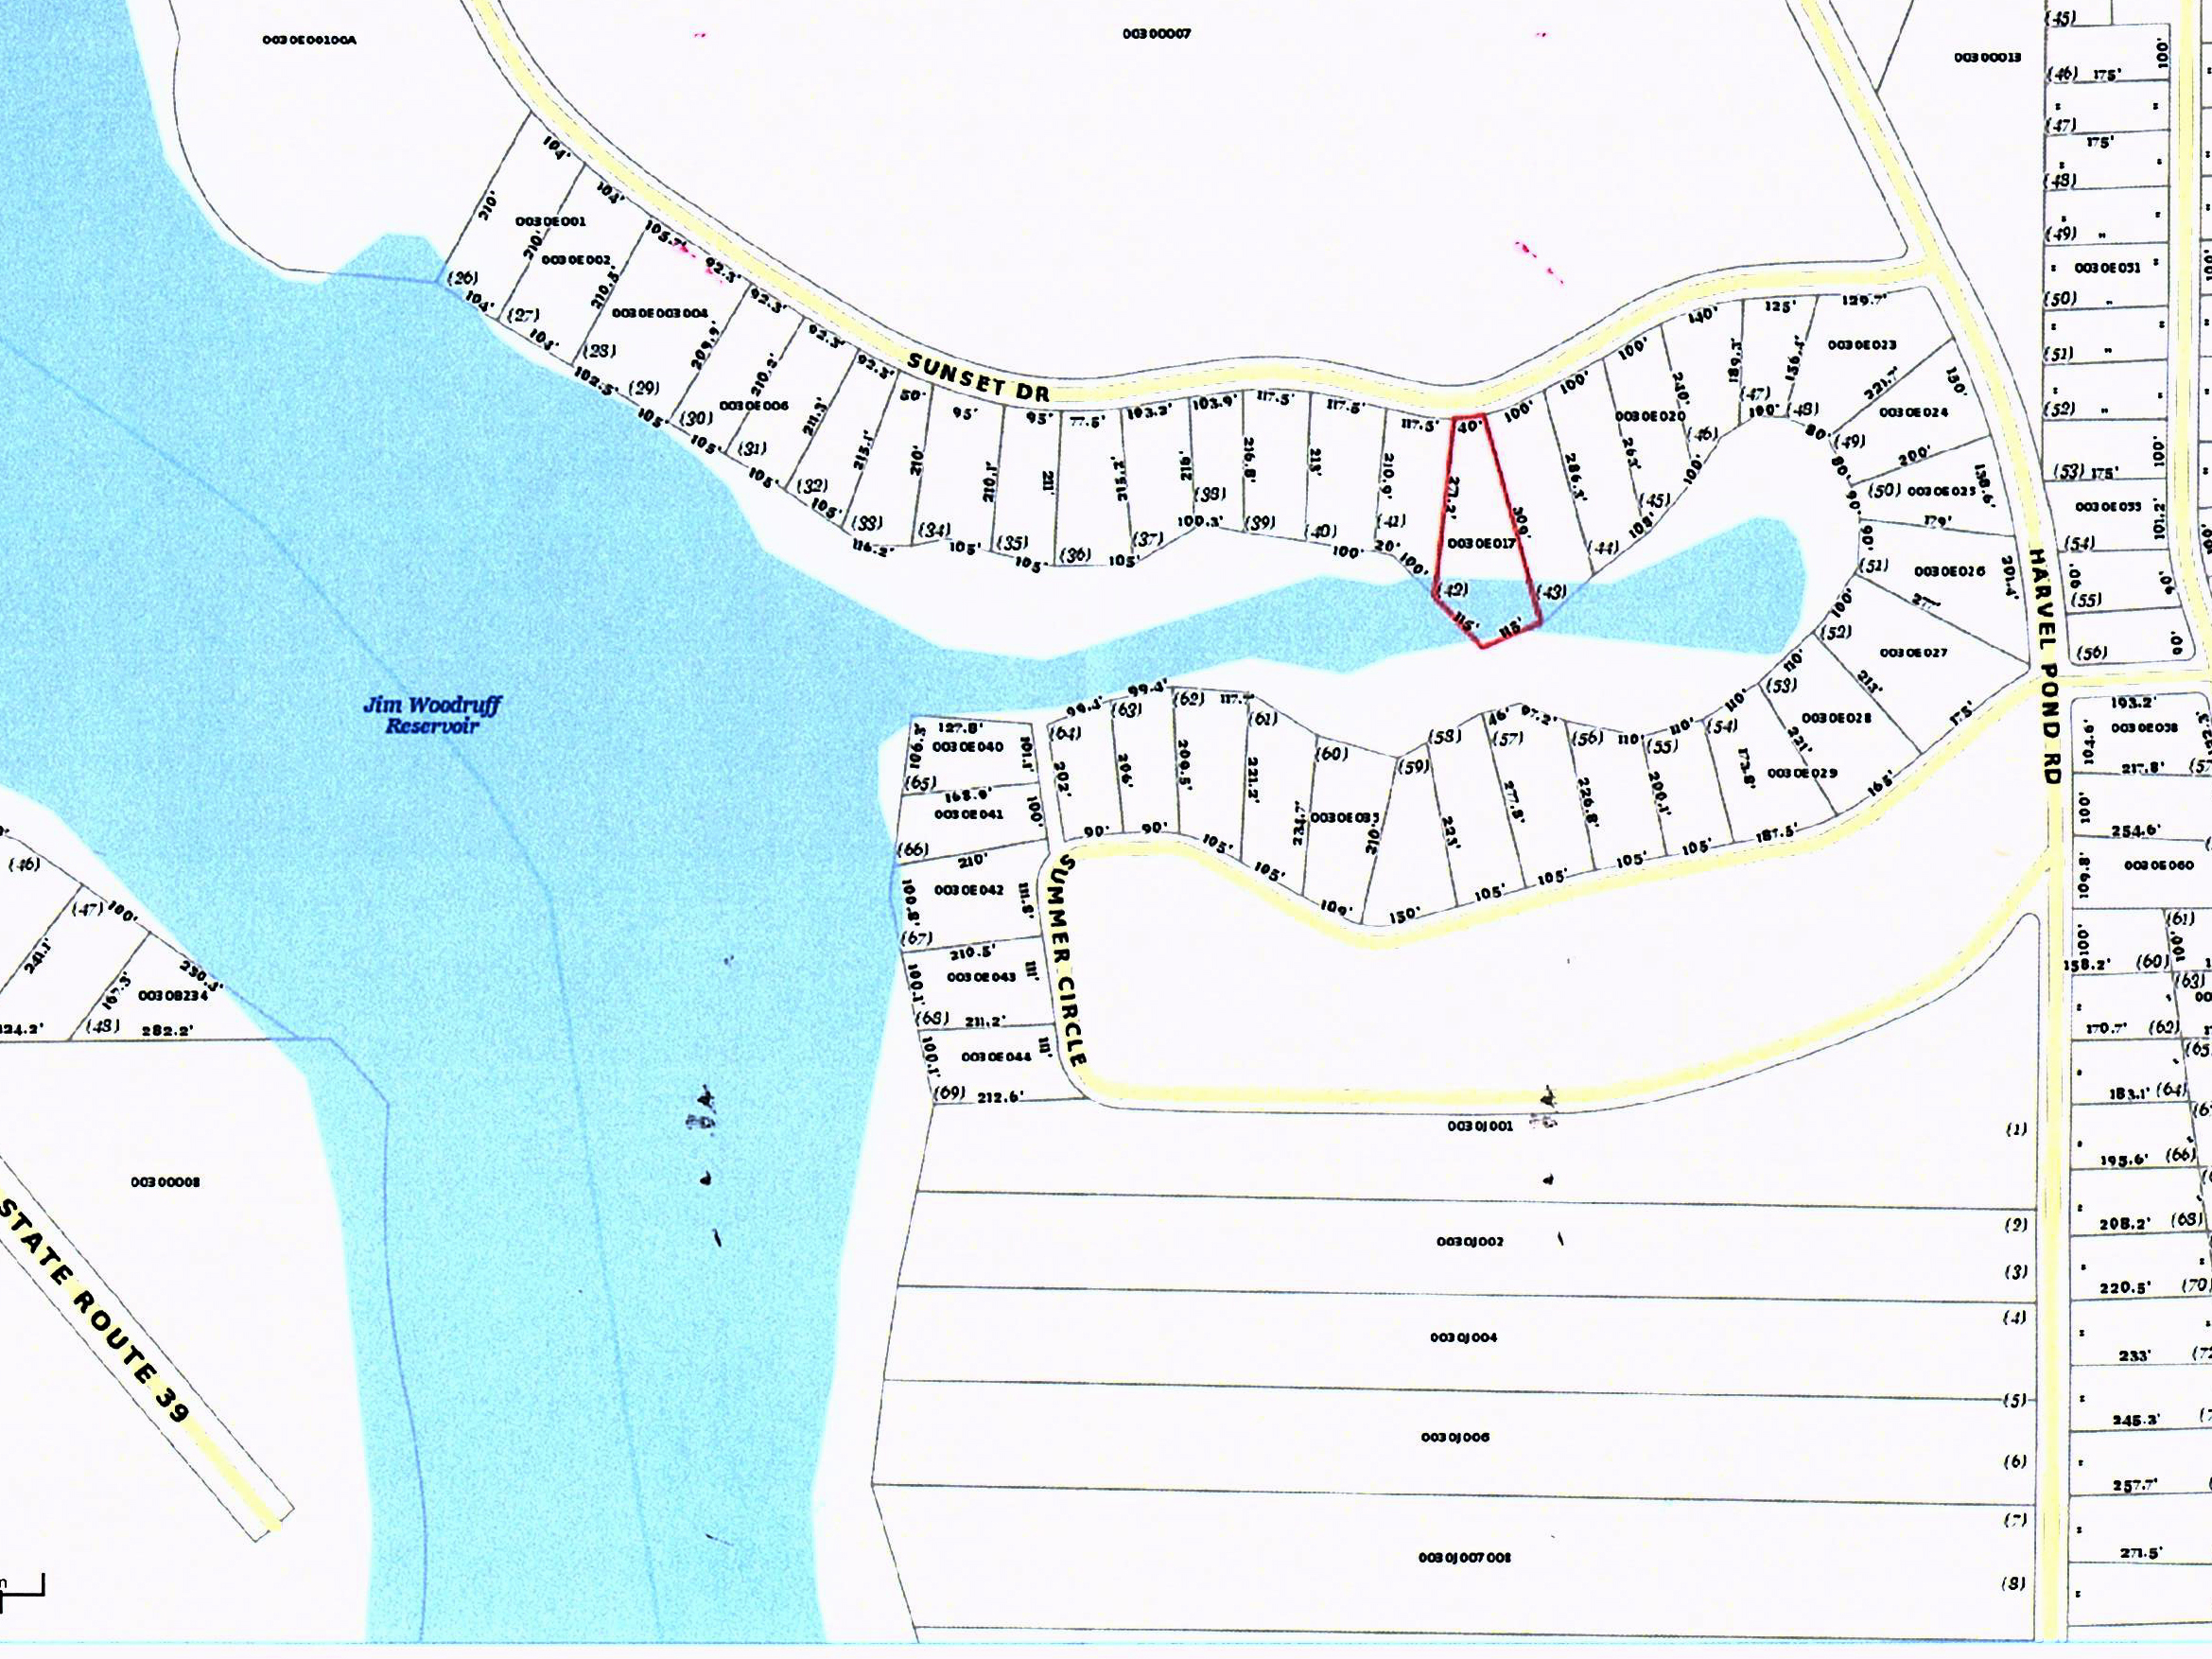 topo__3riversrealty_lake seminole_waterfront_recreation_investment.jpg